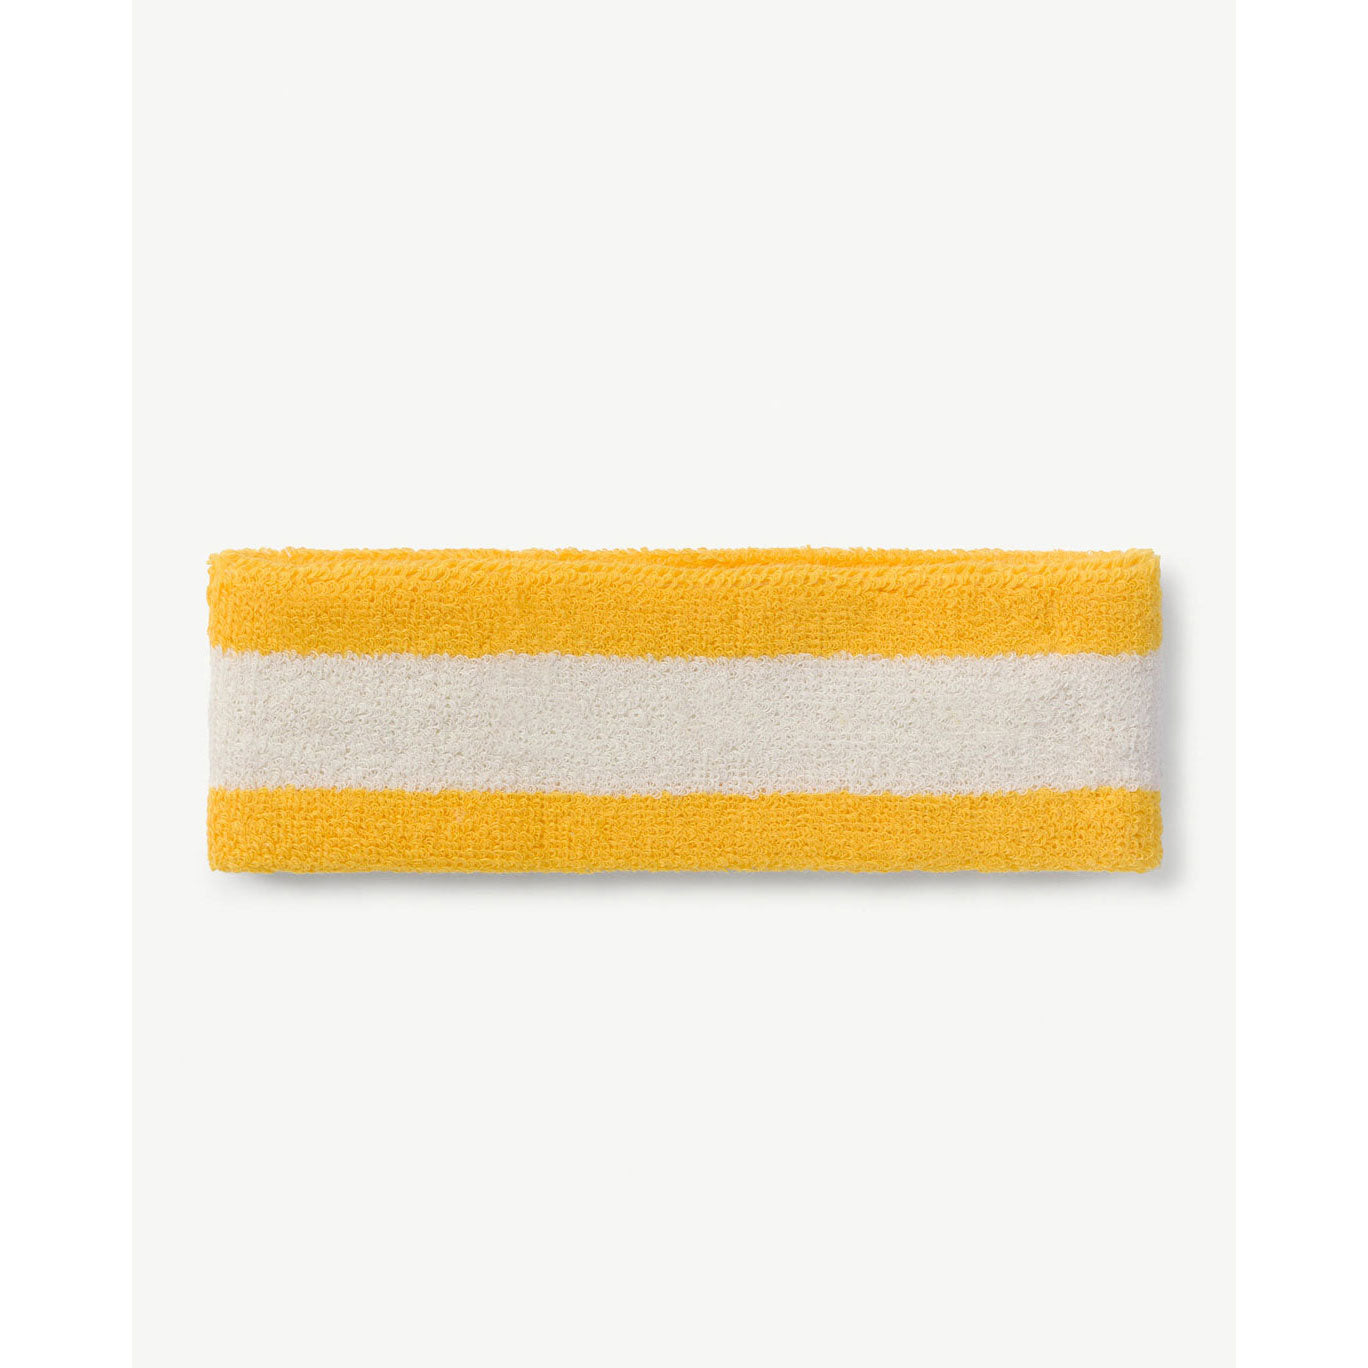 The Animals Observatory Yellow Embroidery Headband